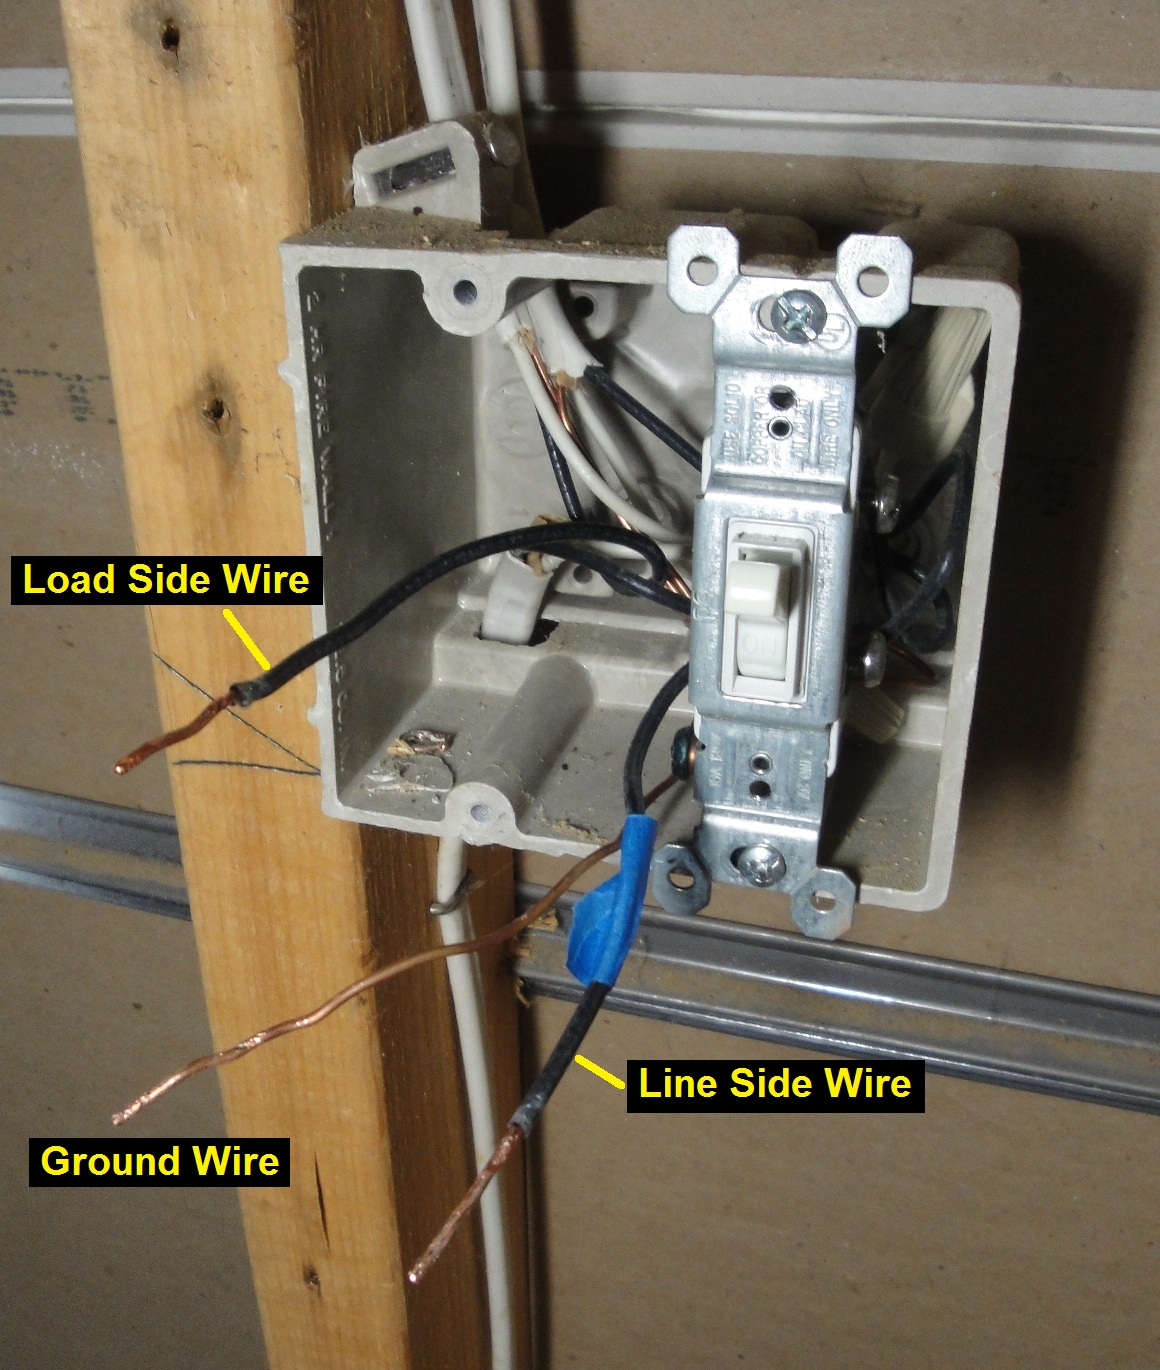 hight resolution of 3 way switch with motion sensor wiring diagram three way wiring multiple outlets together power to